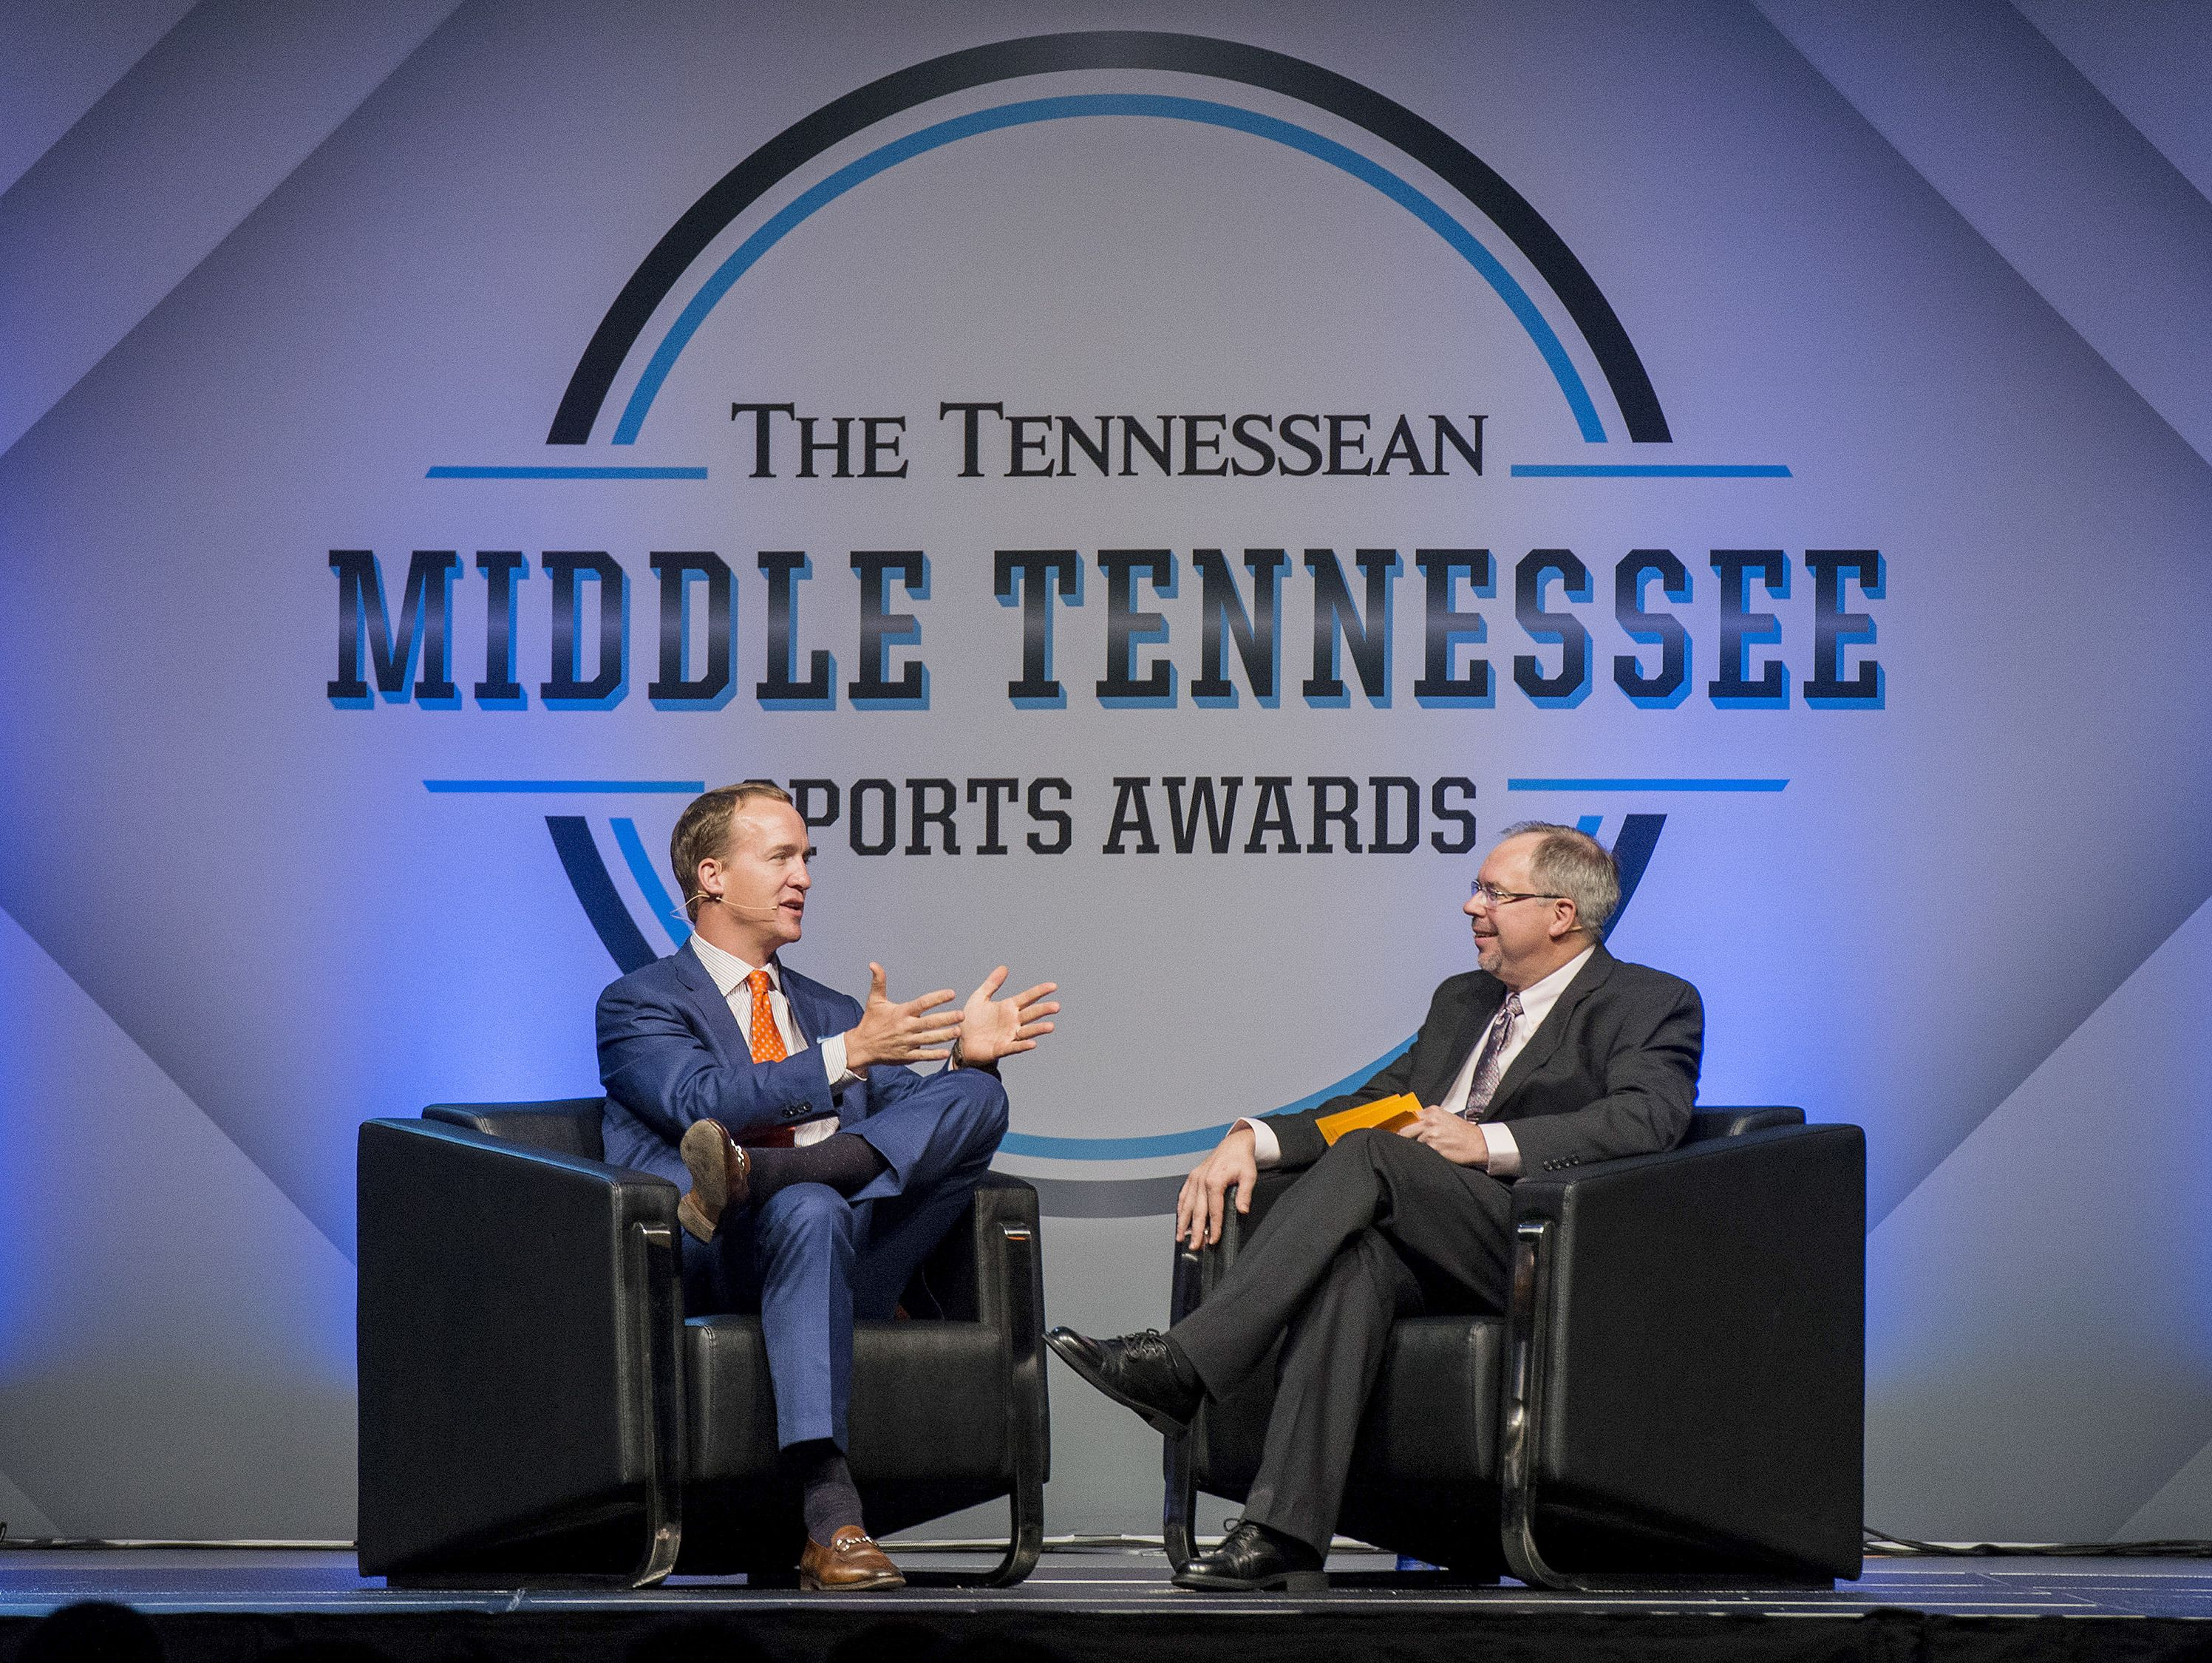 Peyton Manning, left, and The Tennessean's Dave Ammenheuser, right, speak during a Q and A at the Middle Tennessee Sports Awards at Music City Center, Thursday, May 26, 2016, in Nashville, Tenn.